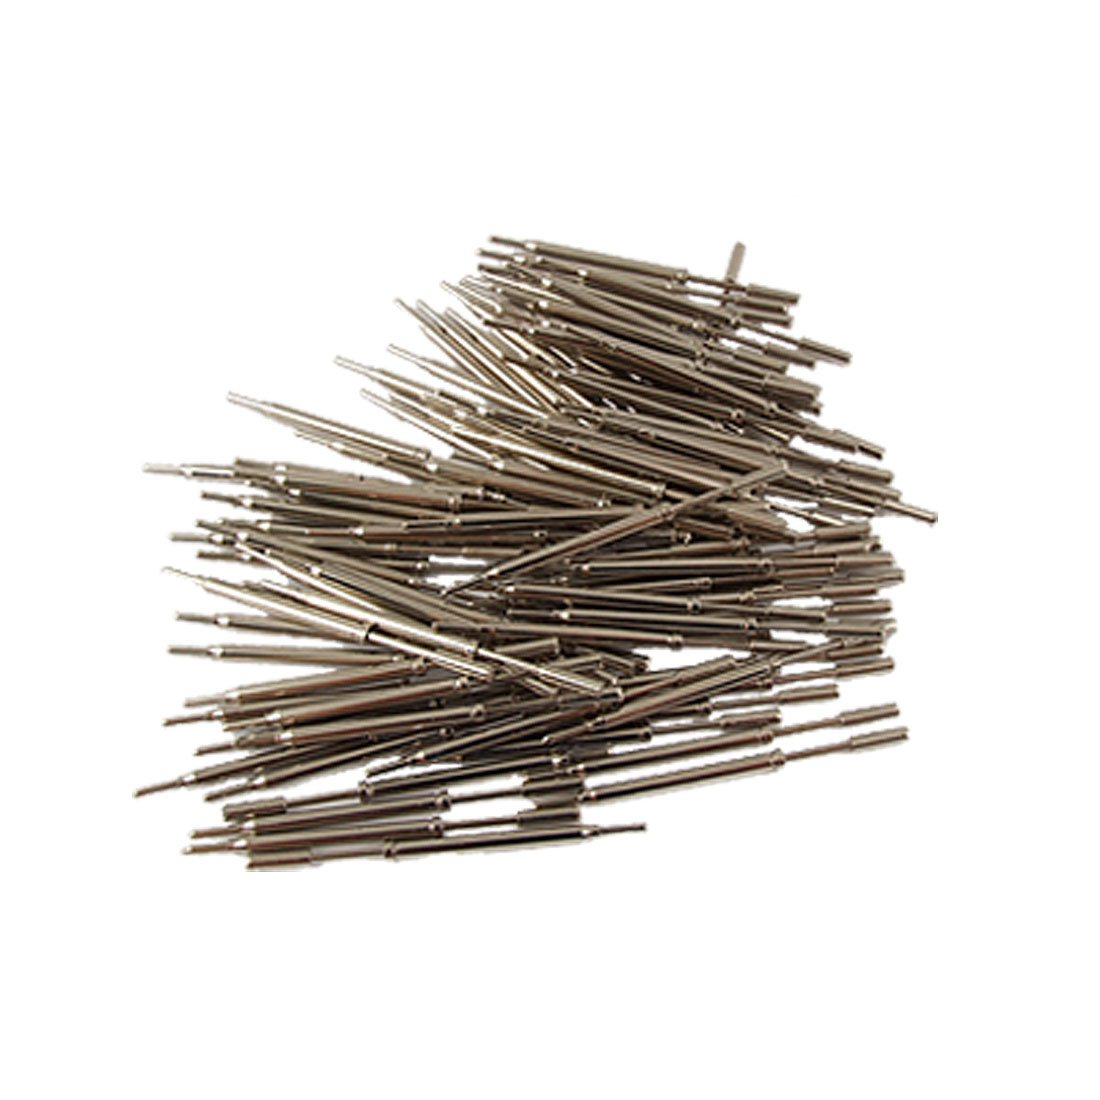 100 Pcs 1.9mm Serrated Tip Knurled Spring Test Probe